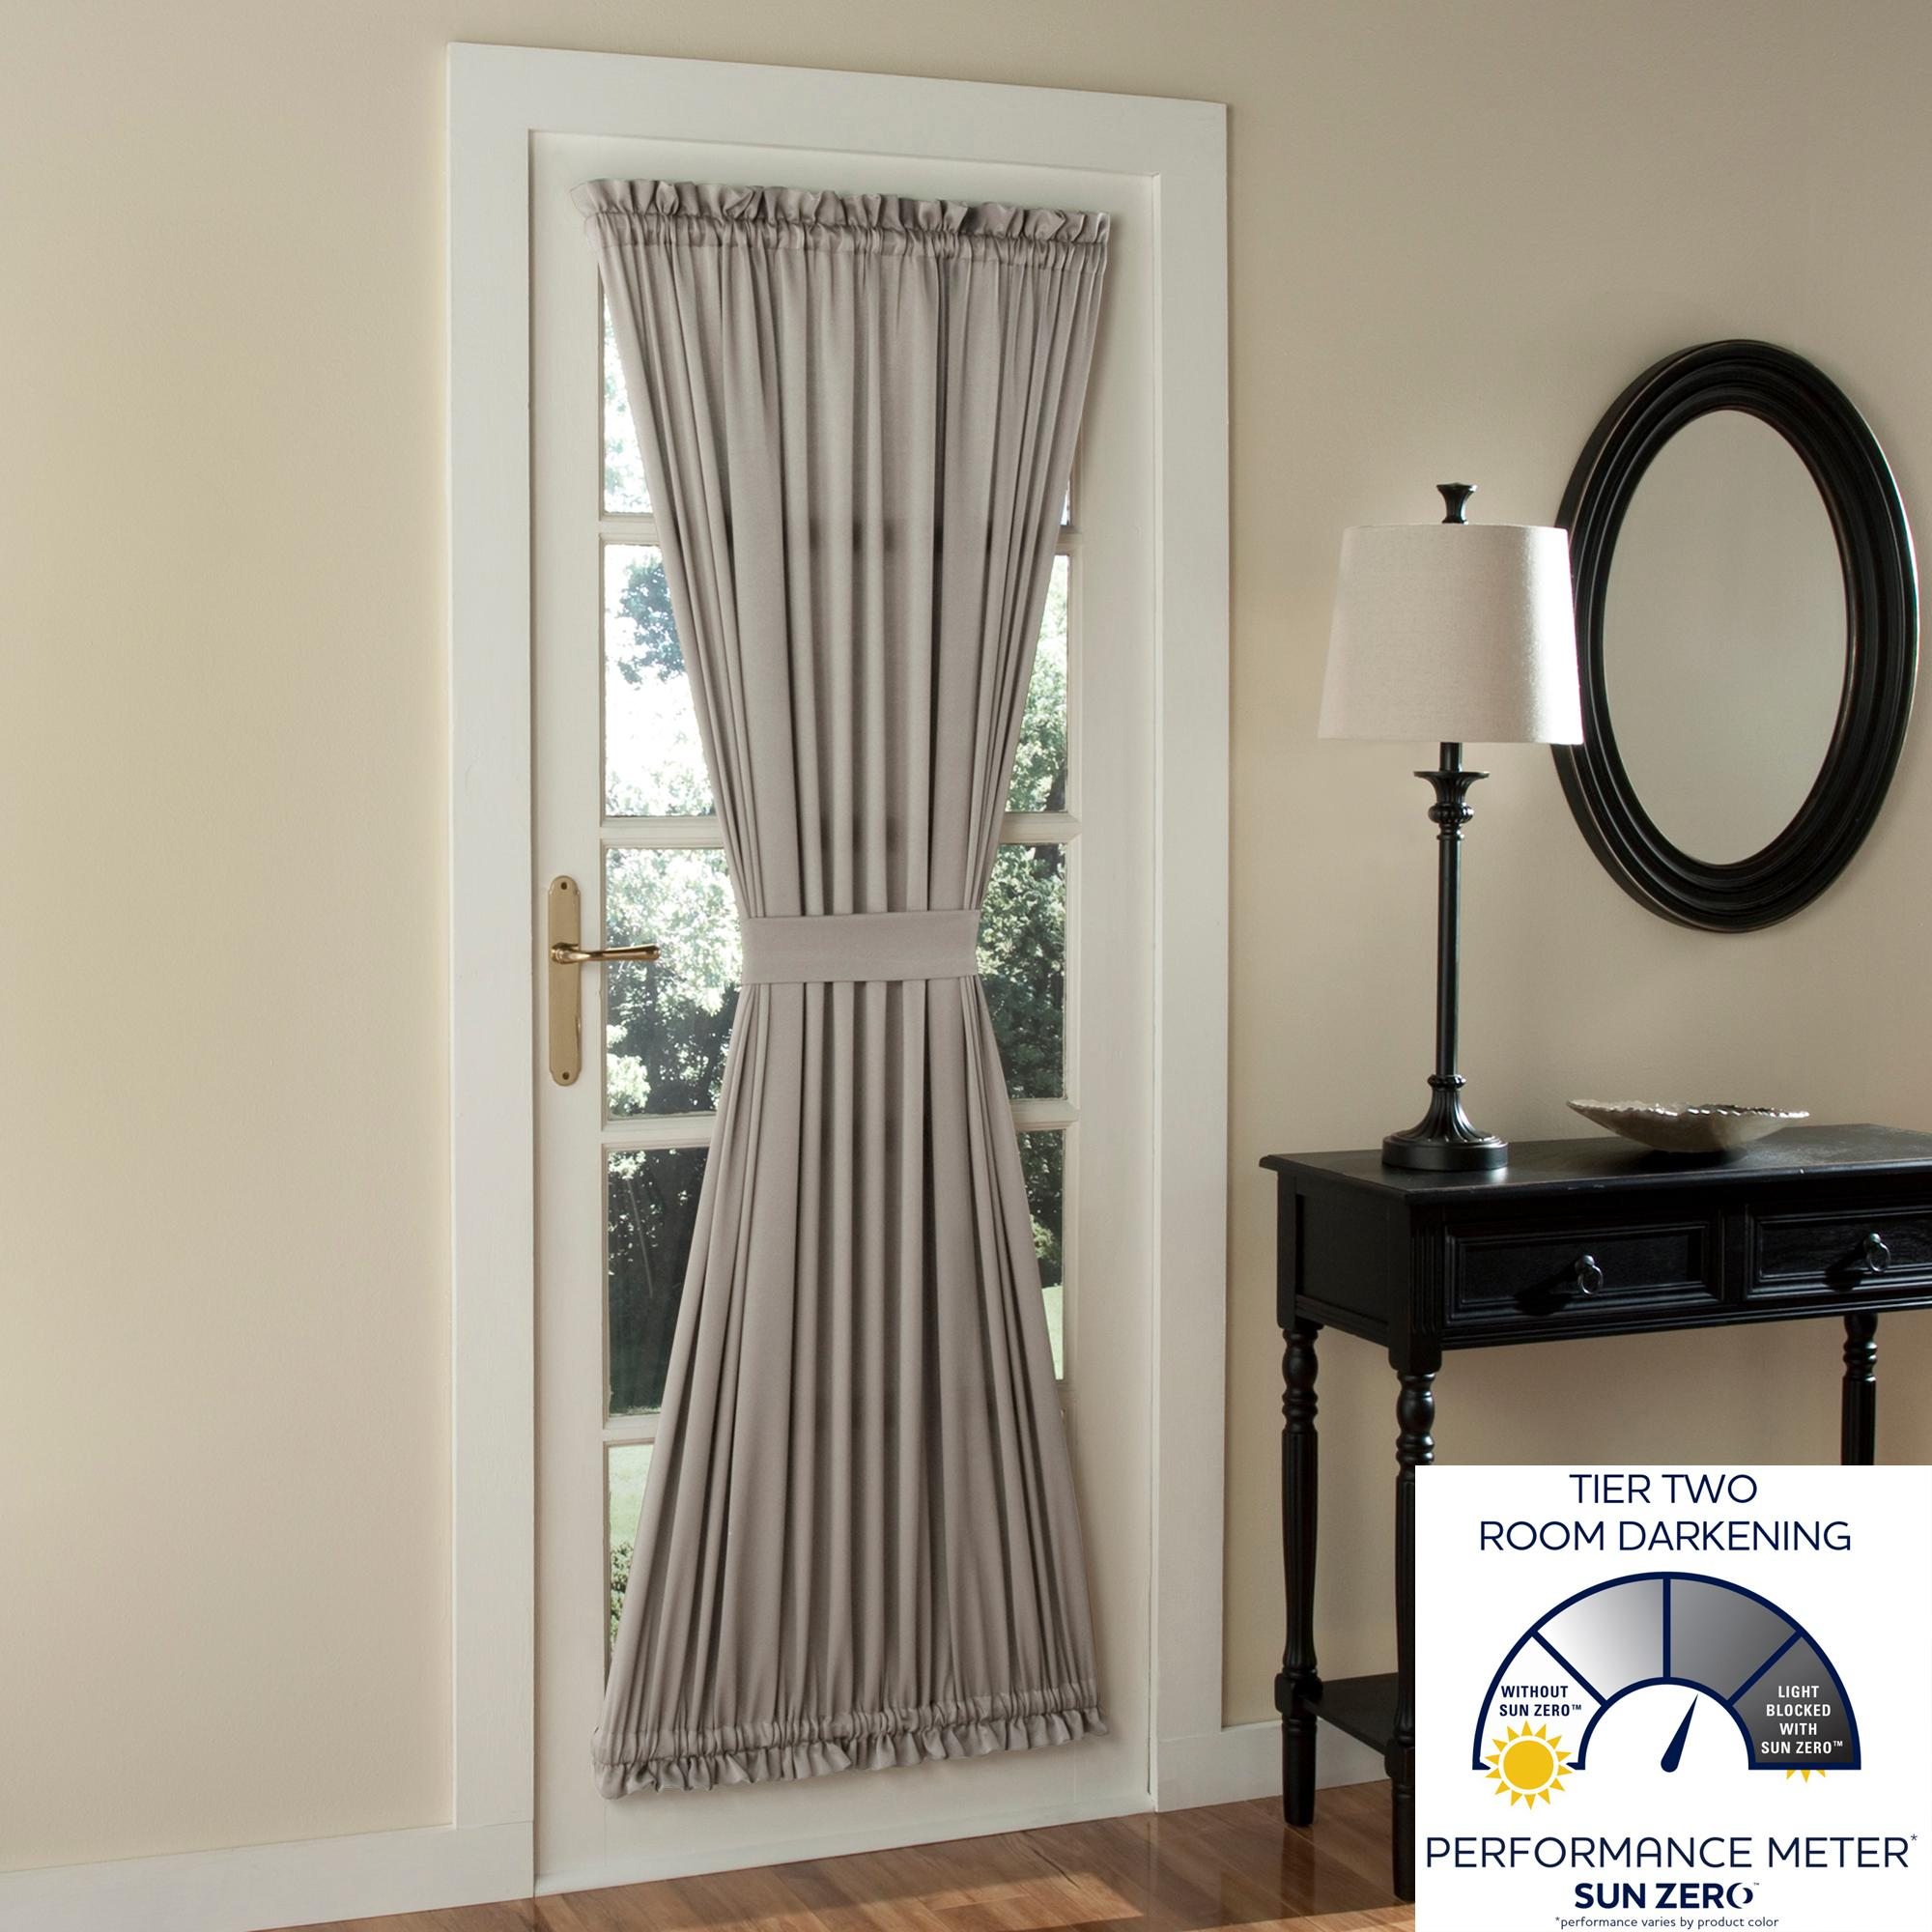 sttropez price cheap curtain australia products blinds translucent online textured glides tracks panel on blind sale riviera